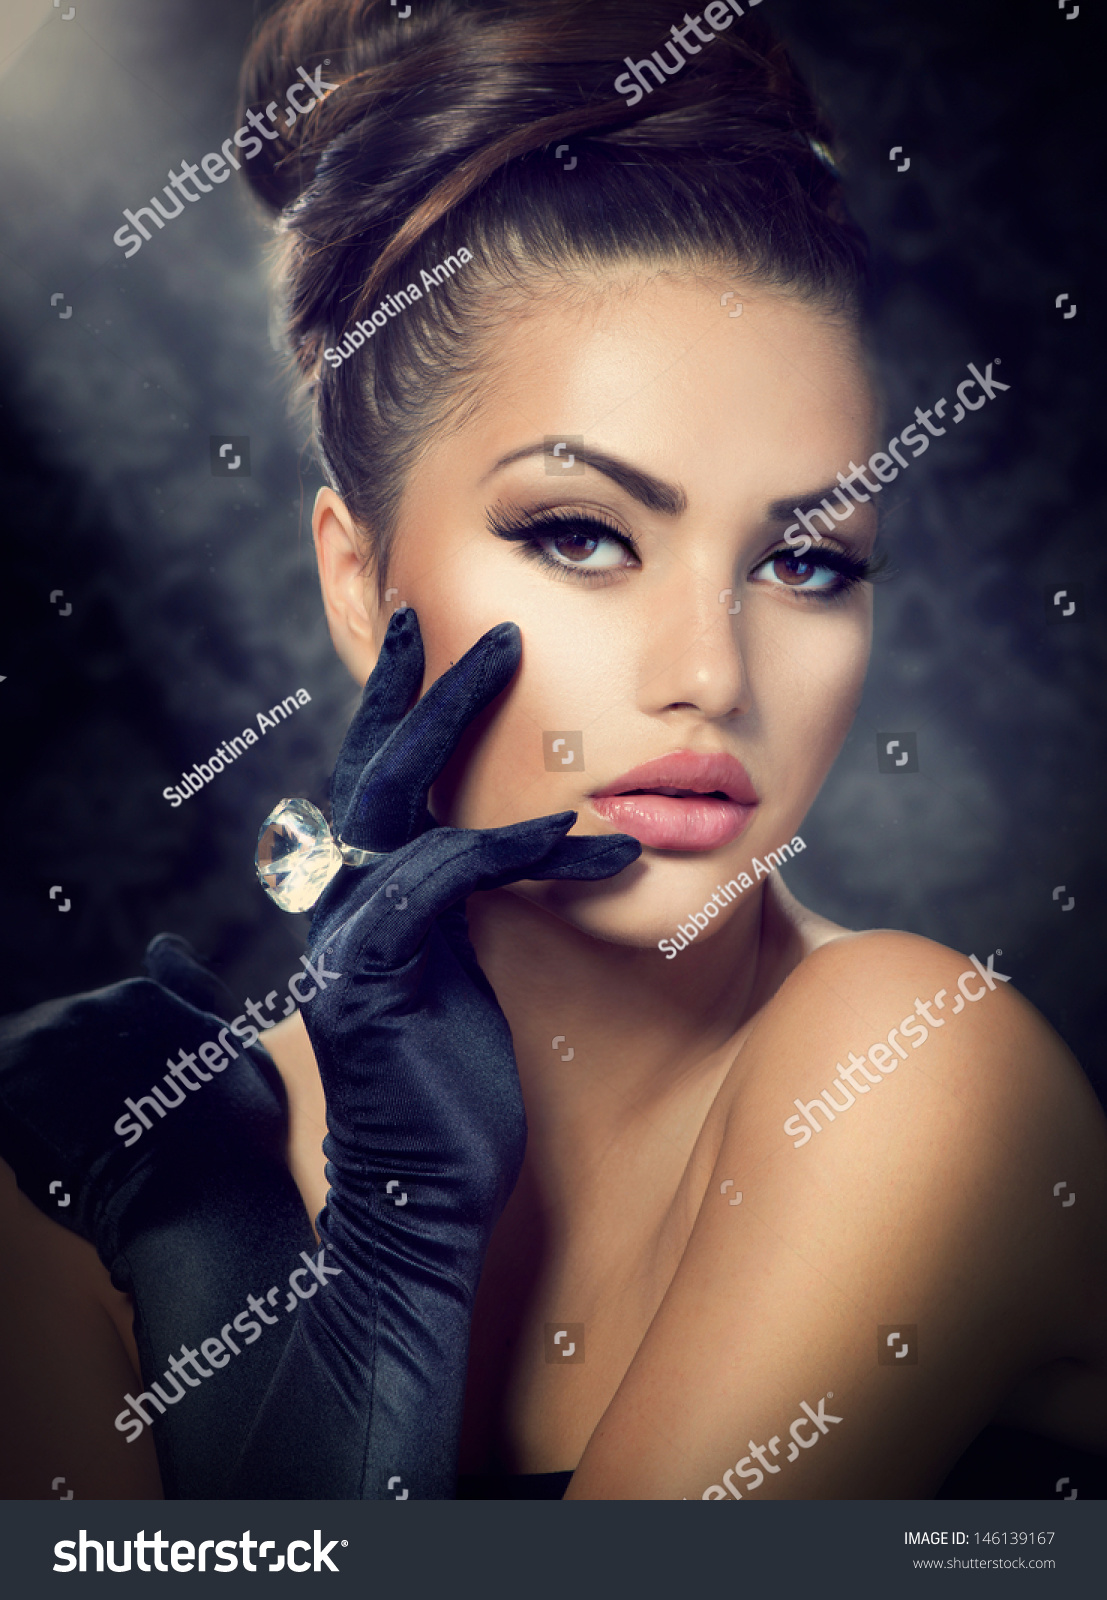 Beauty Fashion Glamour Girl Portrait Vintage Stock Photo 146139167 Shutterstock